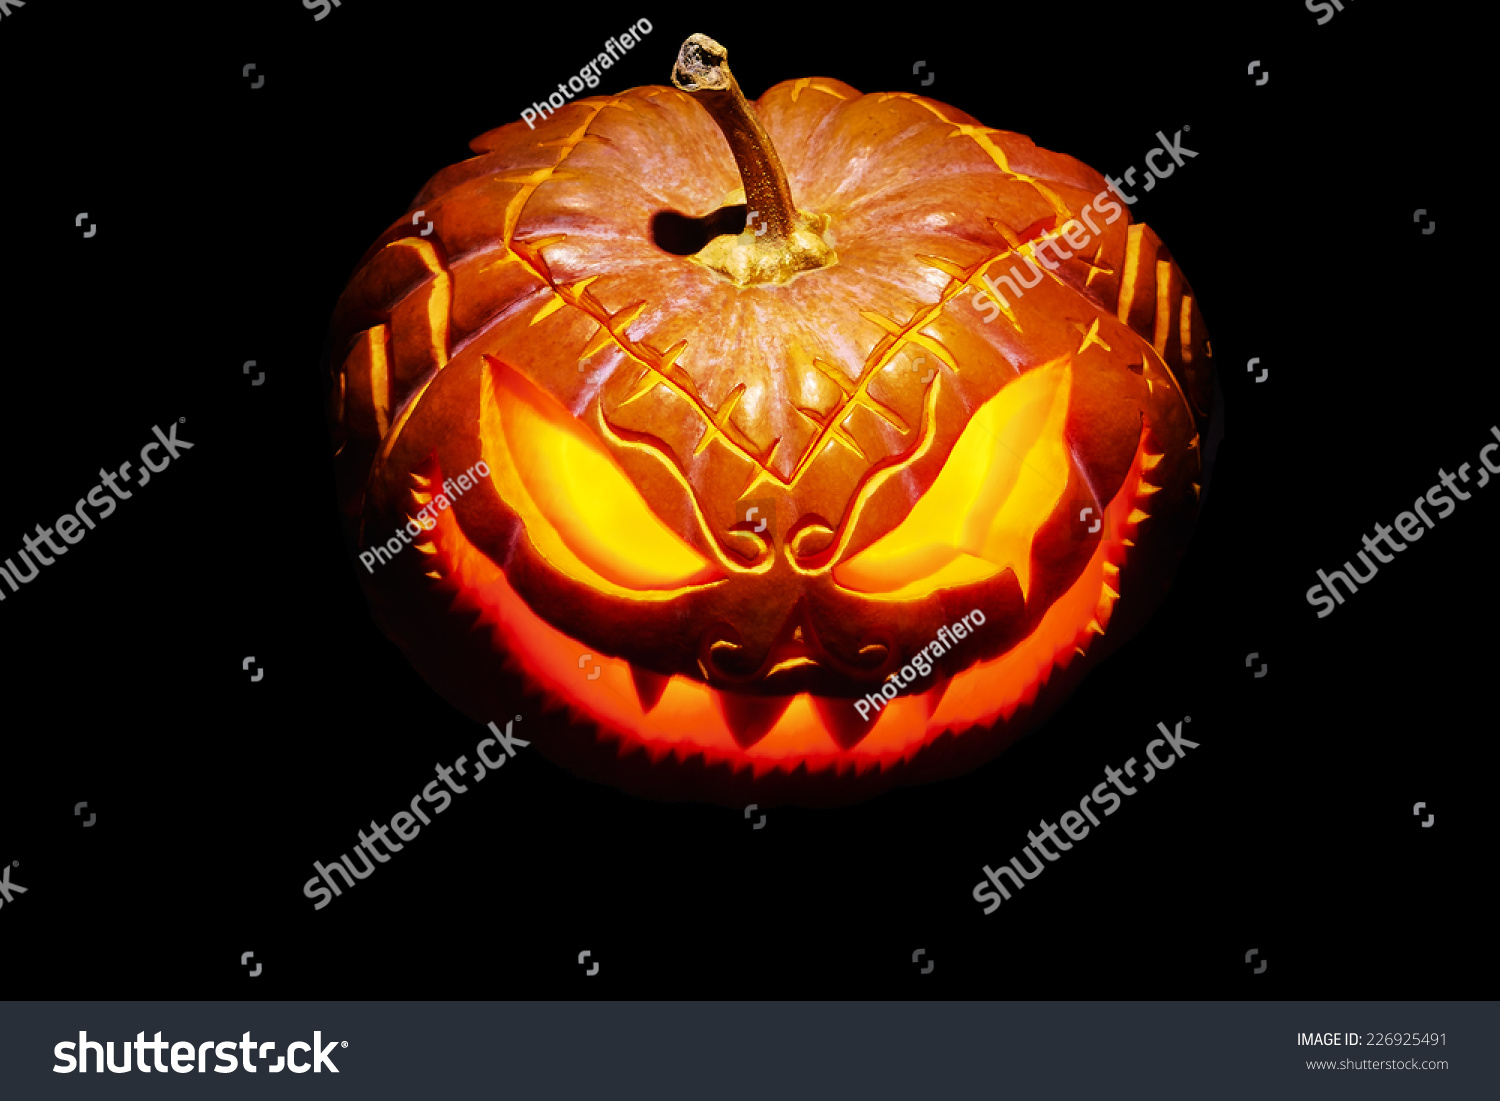 scary halloween pumpkin with burning eyes, isolated on black | ez canvas